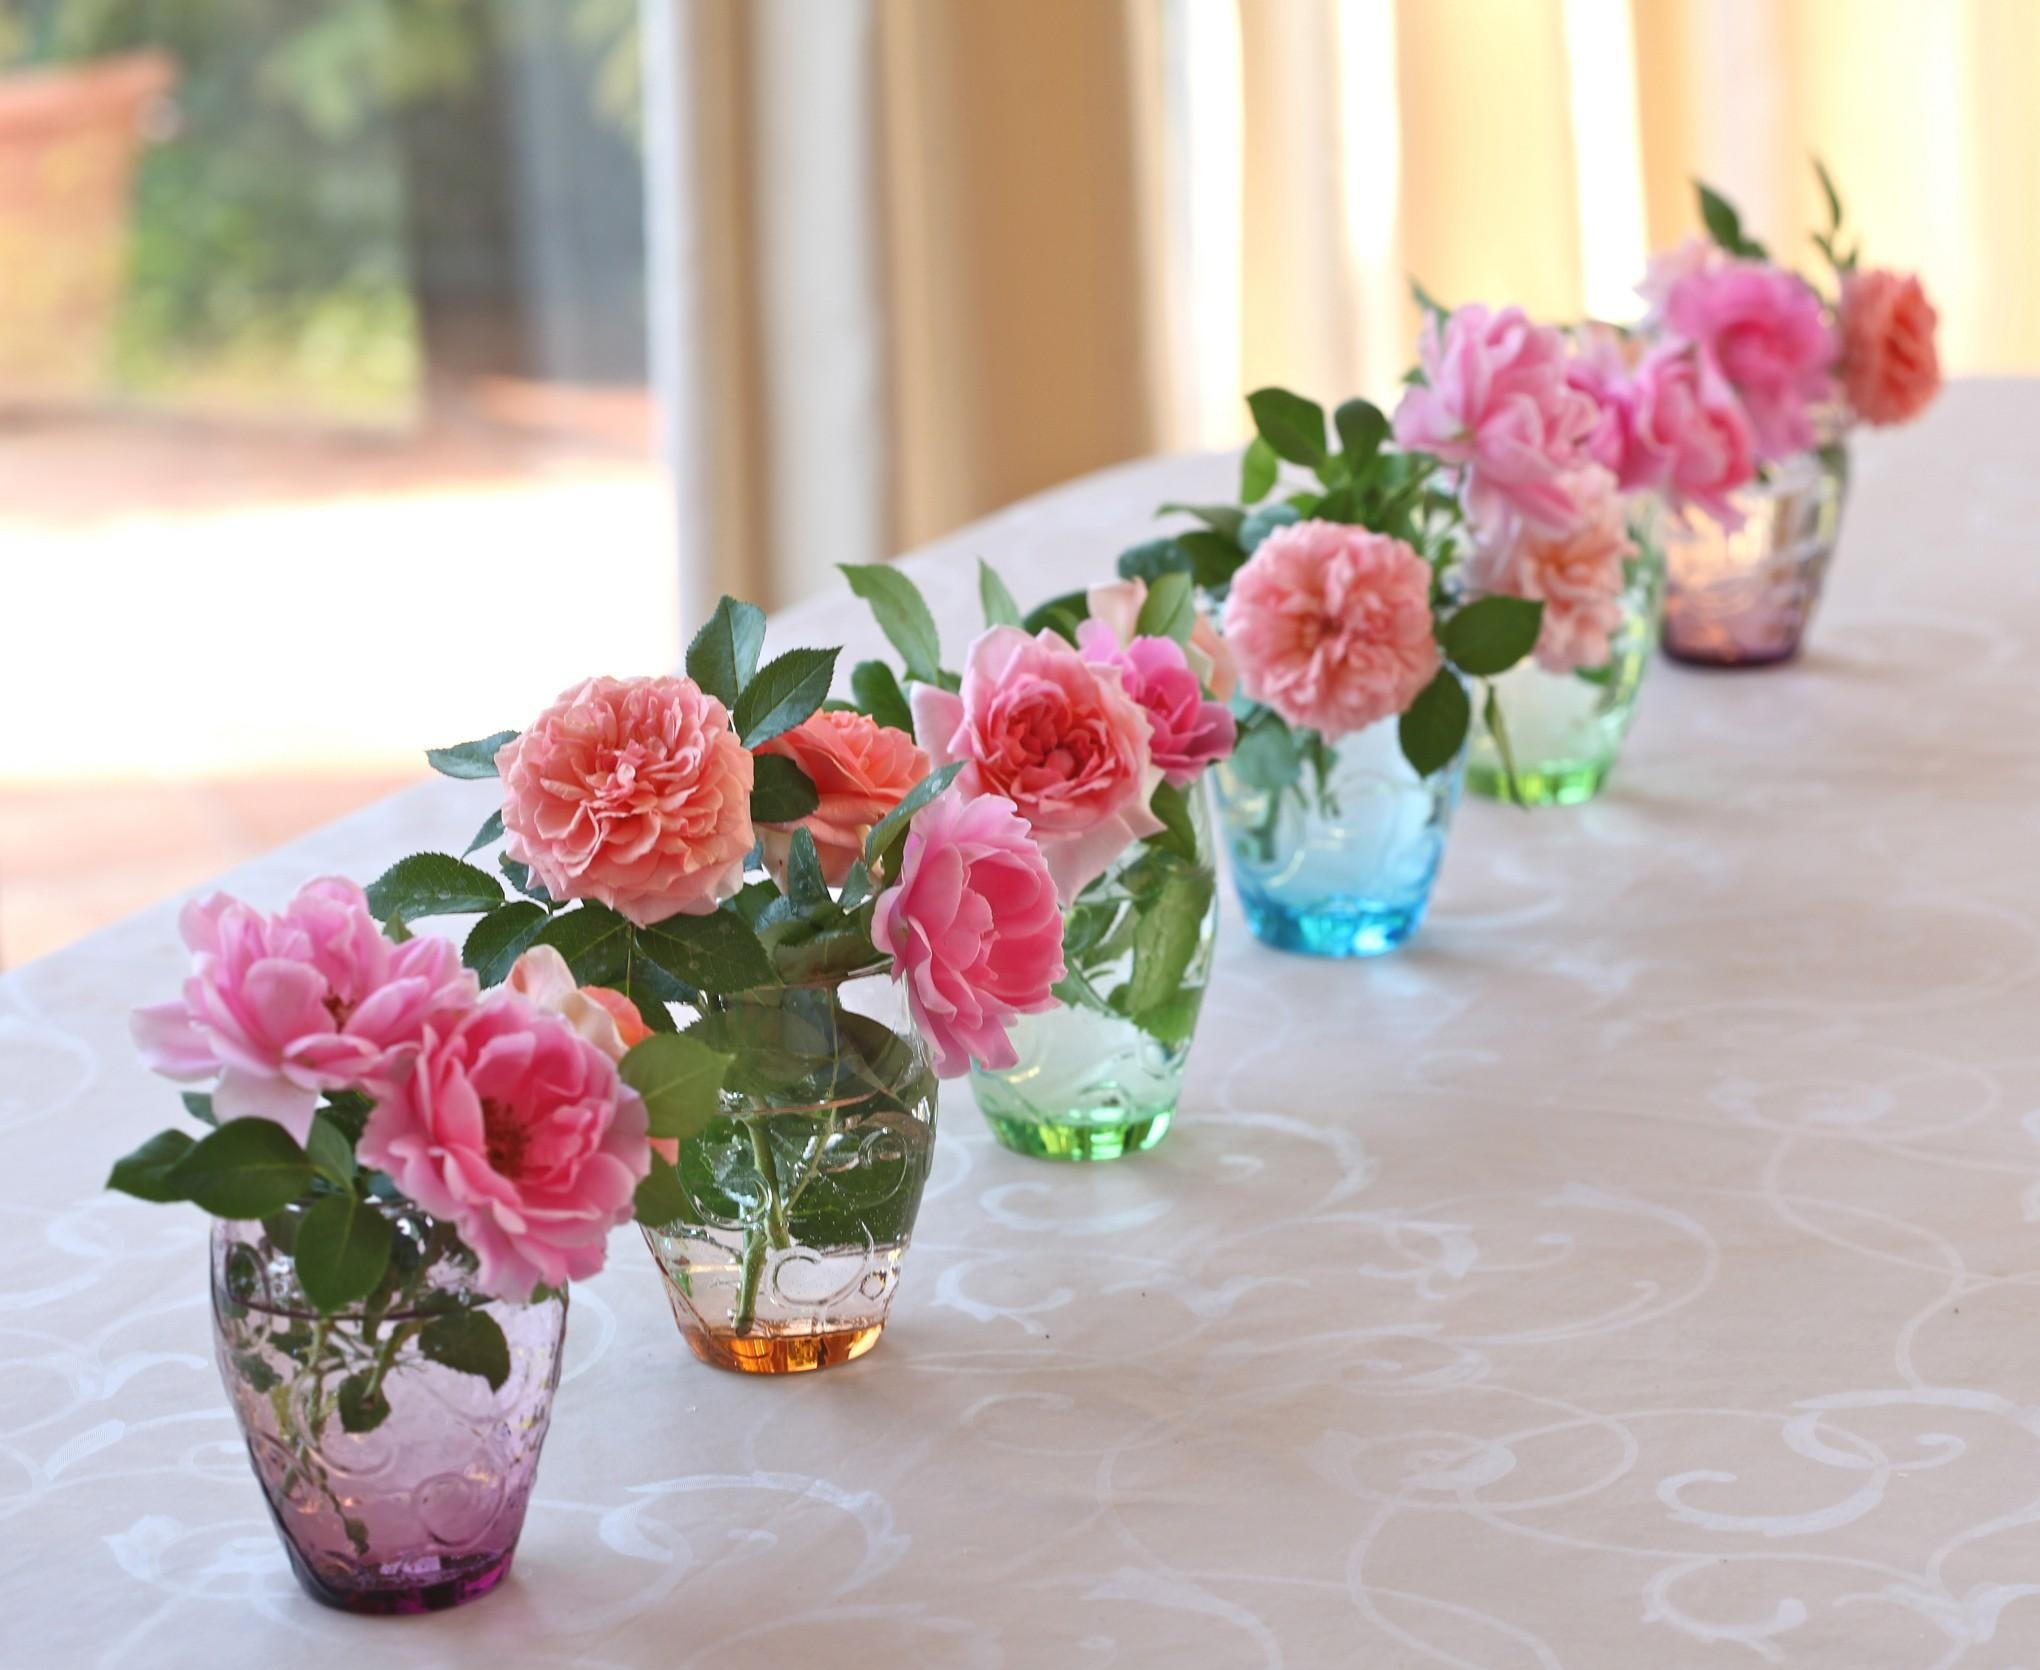 131449 download wallpaper Flowers, Vases, Row, Roses screensavers and pictures for free